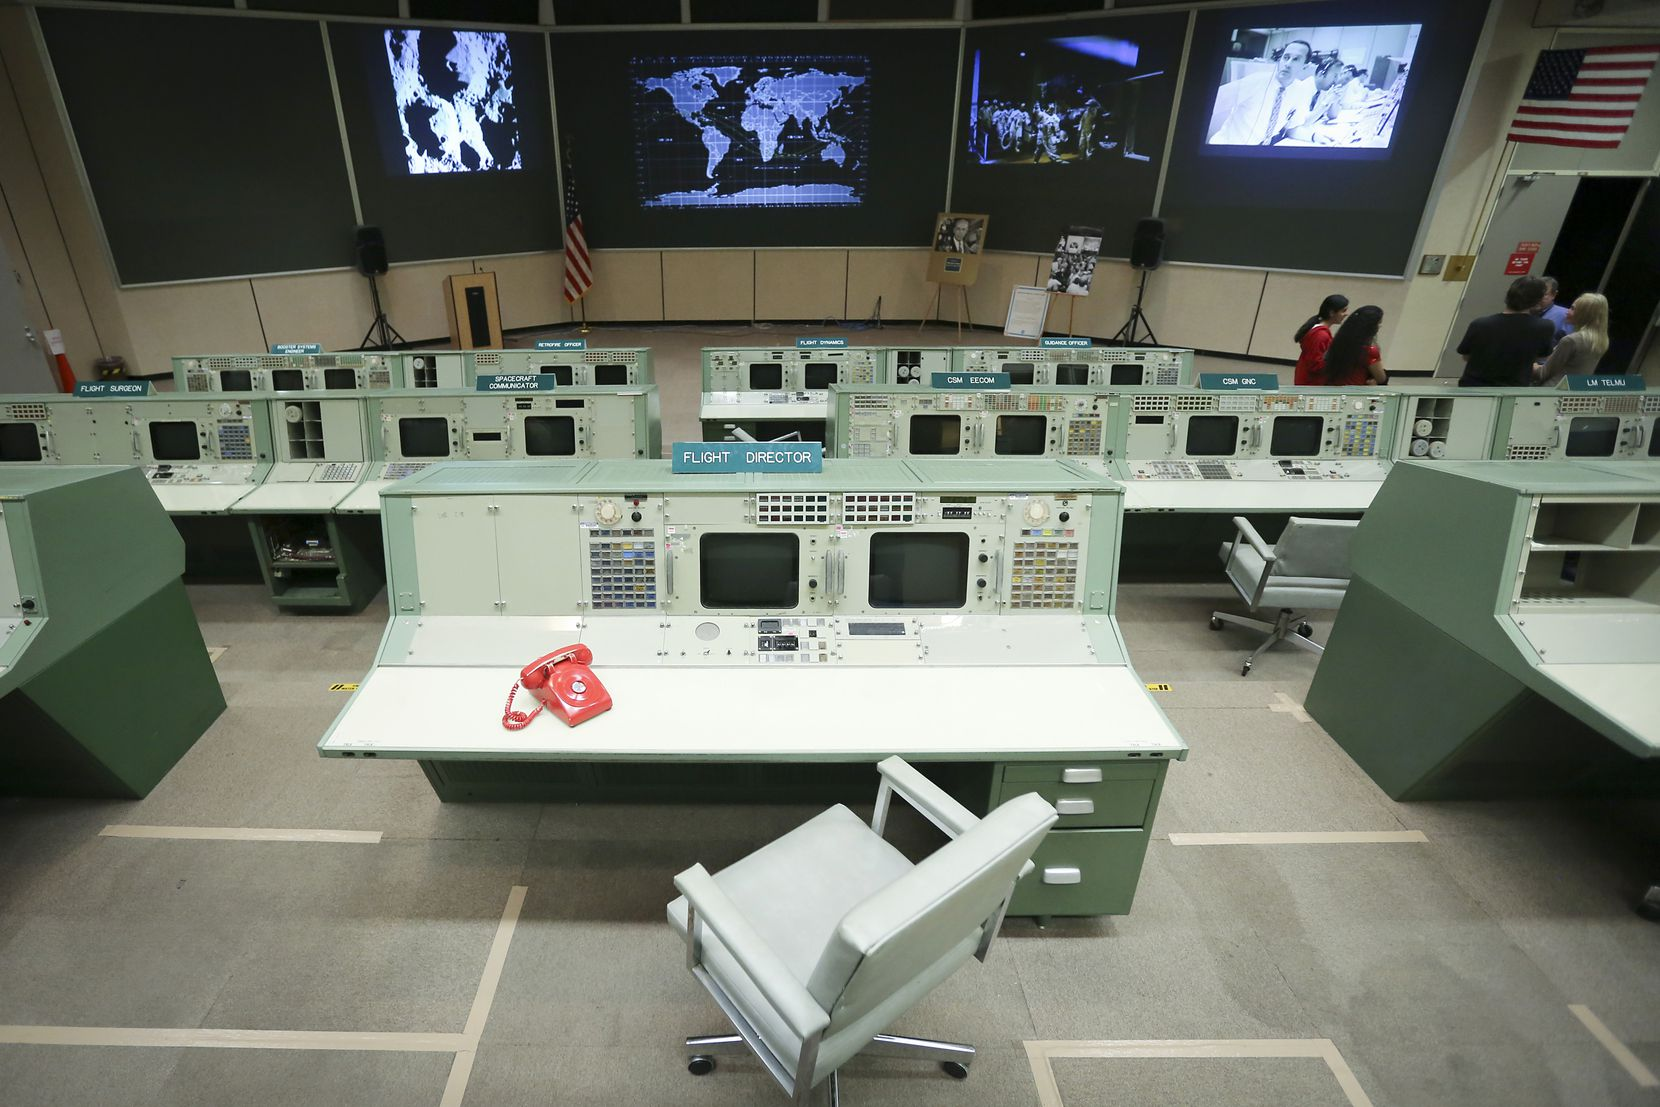 The former Mission Control is one of the most fascinating parts of any Johnson Space Center tour, because its technology dates to the '50s and '60s and looks nothing like what's used now.